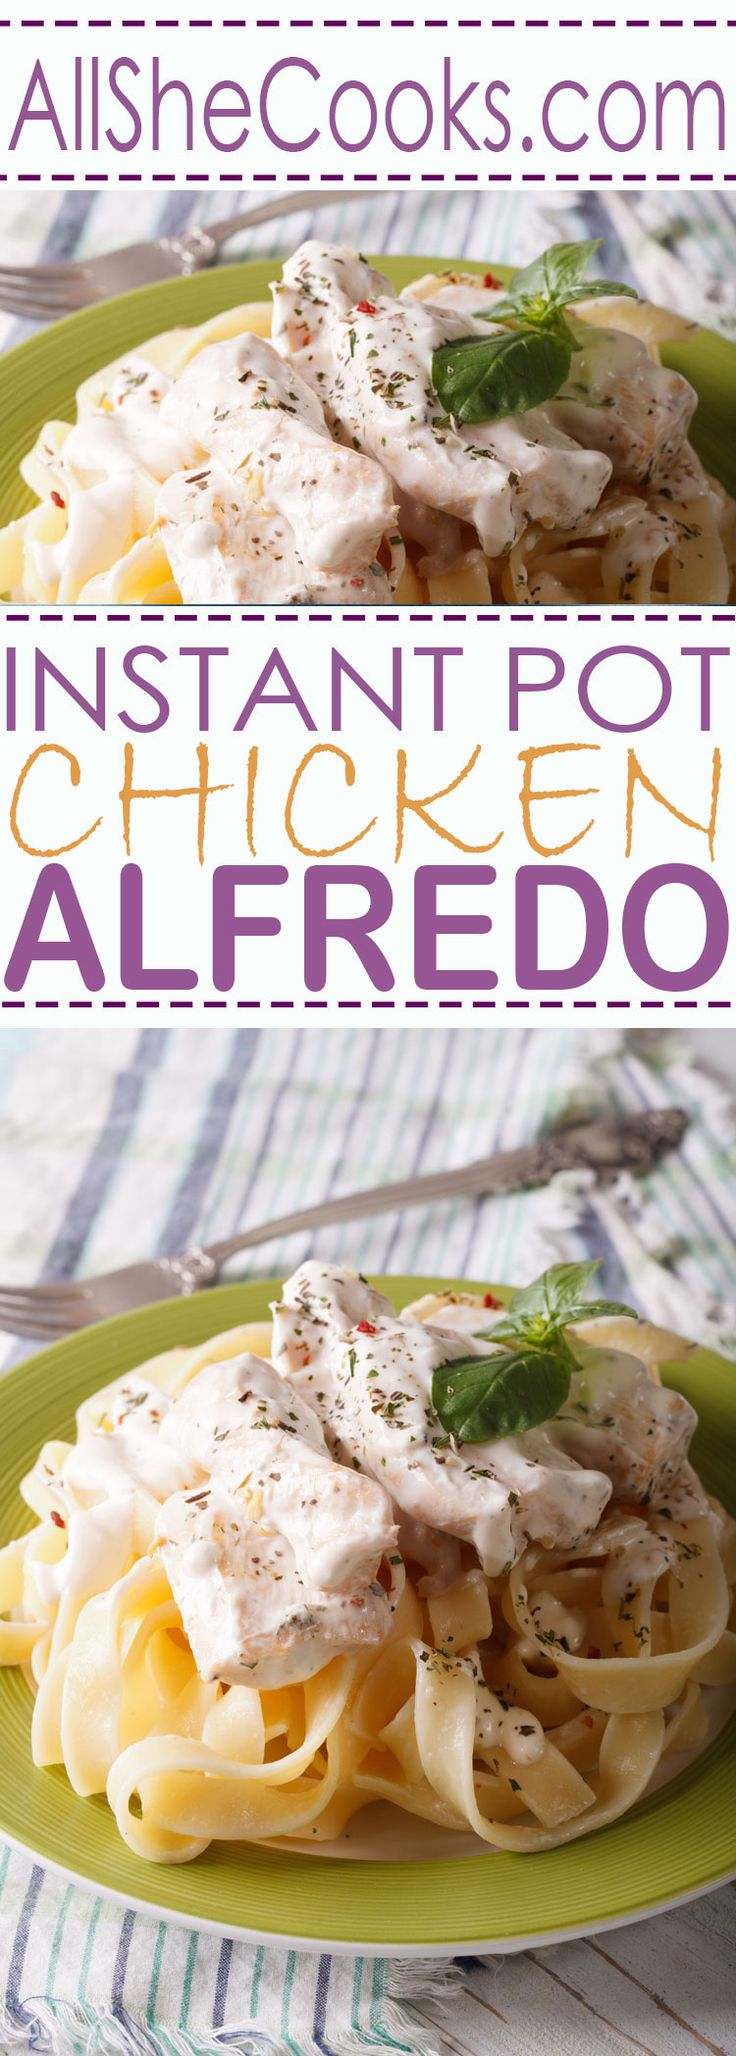 Easy Instant Pot Chicken Alfredo. This is an easy way to make chicken alfredo with delicious results.